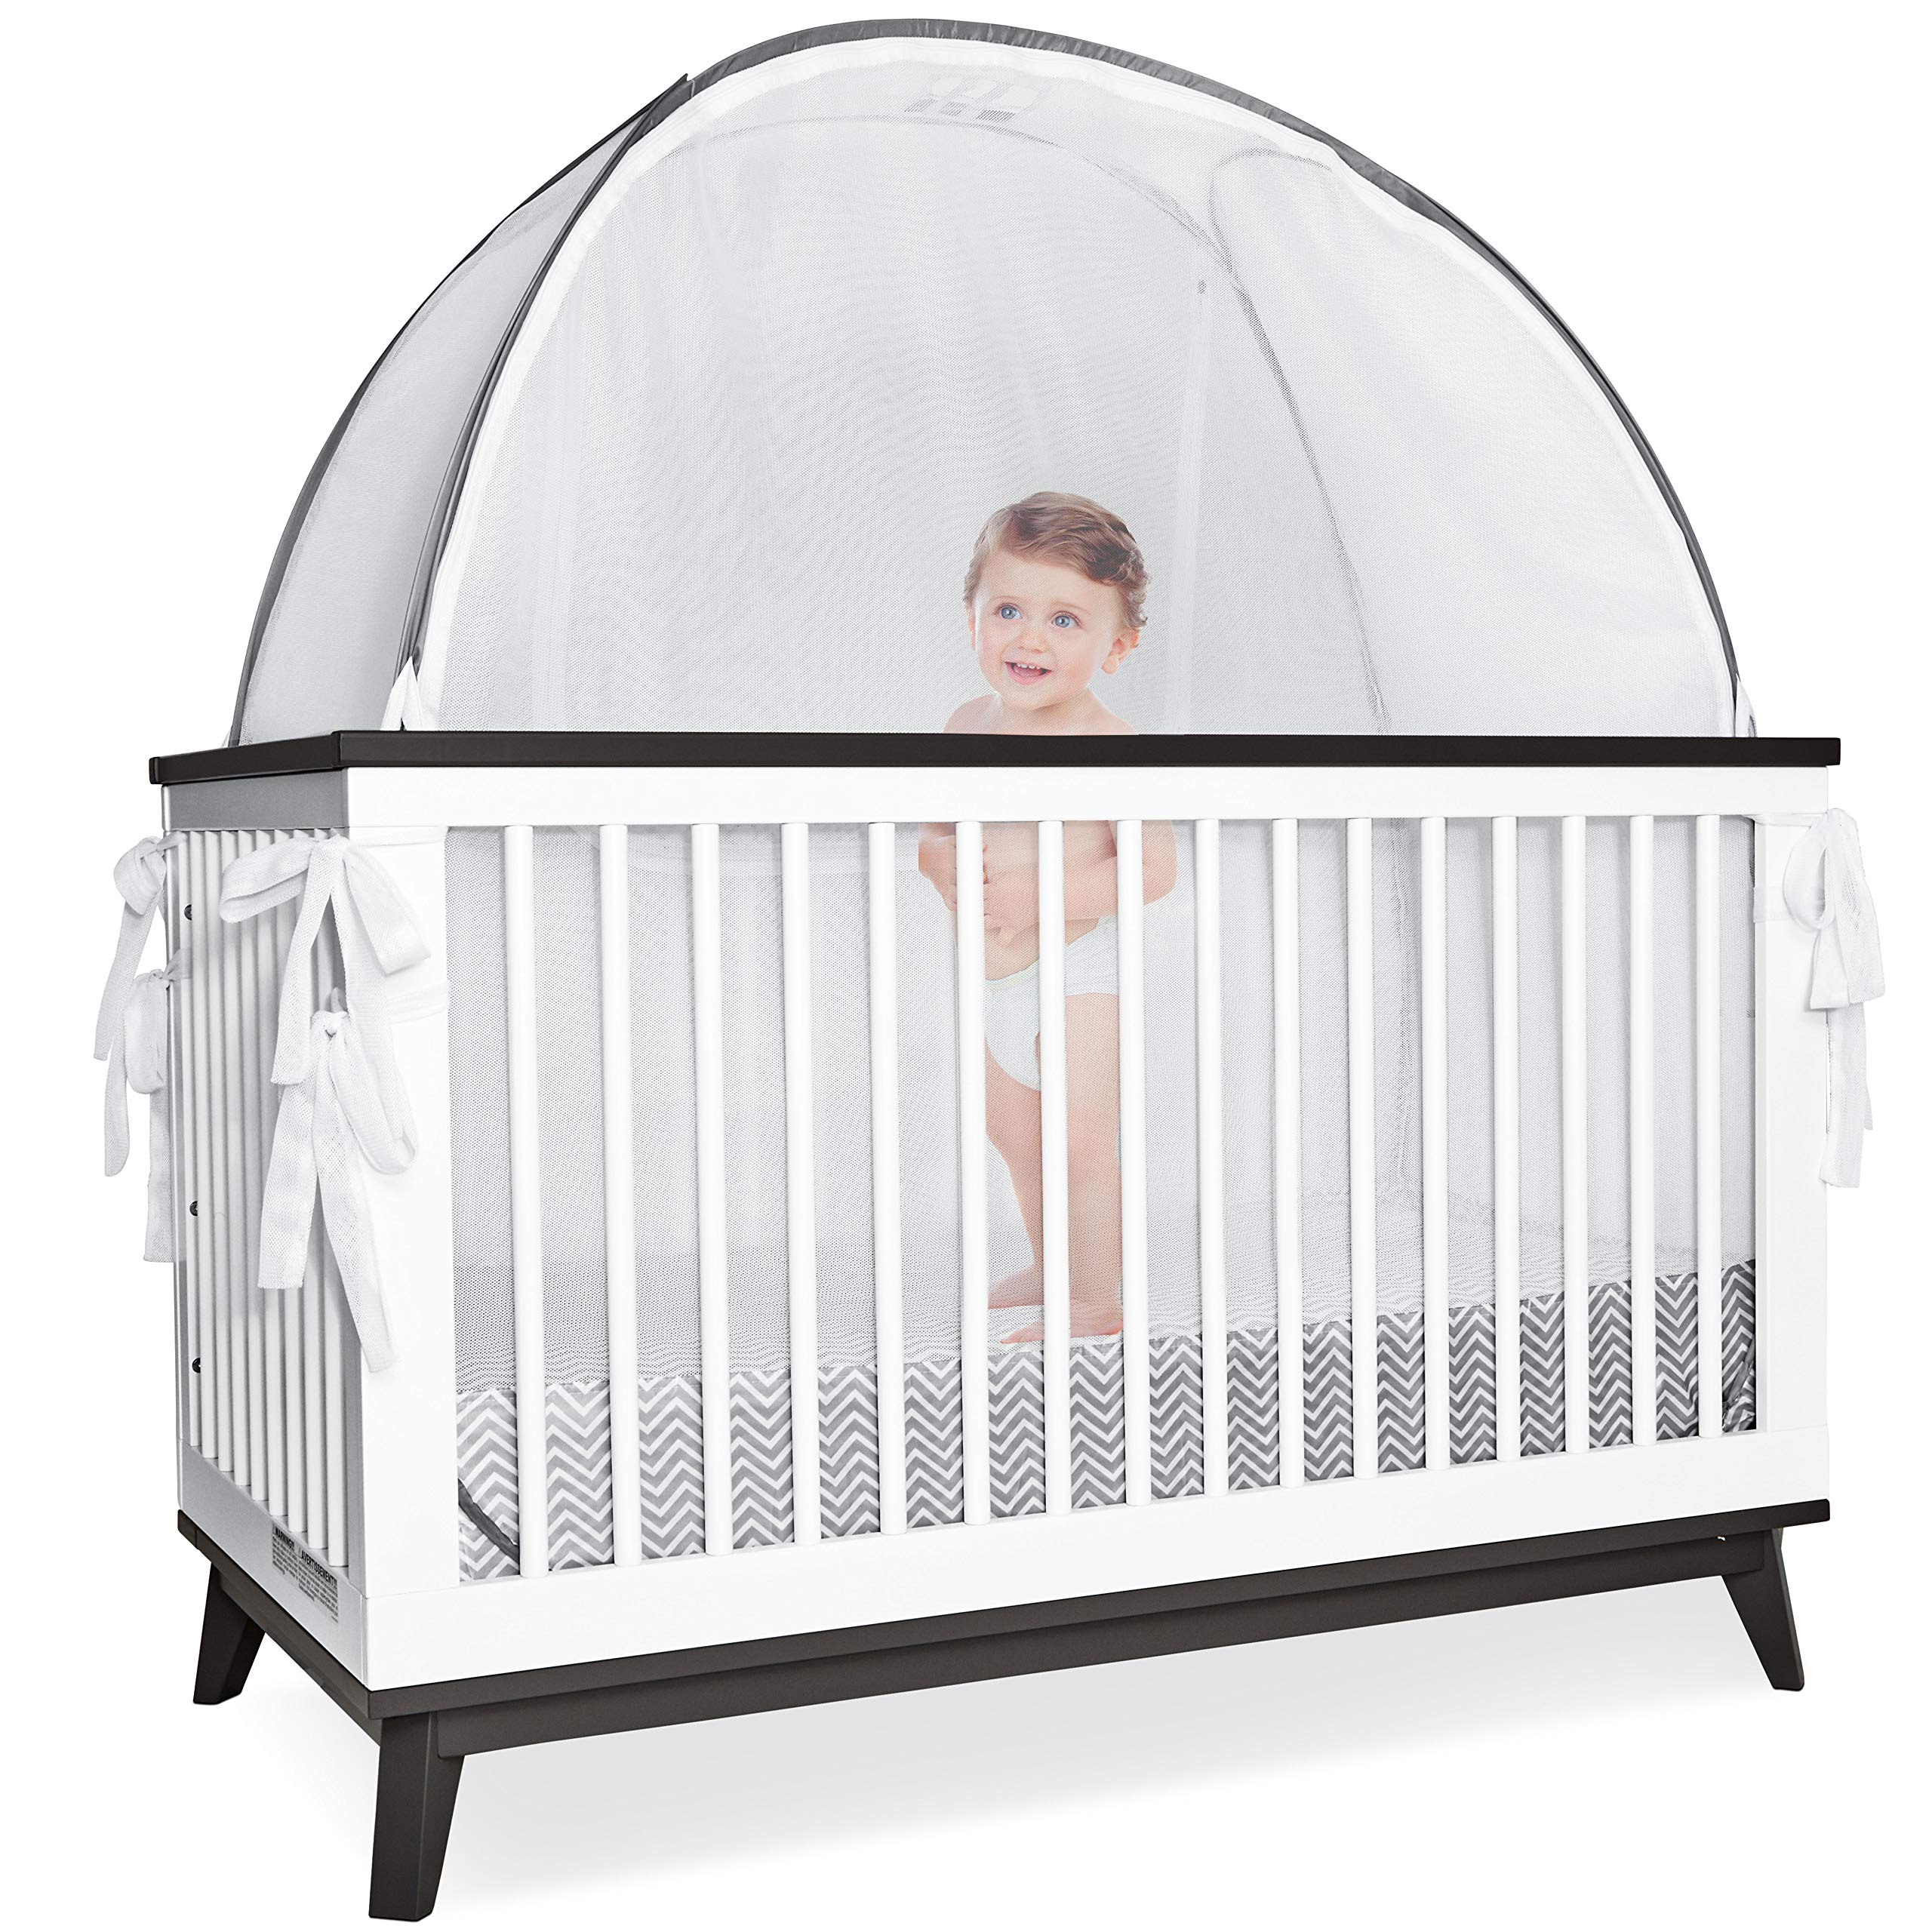 Grey Baby Canopy Cover-Safety Pop Up Tent| See-Through Crib/Nursery Mesh Cover Net with New Viewing Window| Zippered Safety Top for Mosquito Bites/Falling Protection| Soft Light Mesh | for Infants